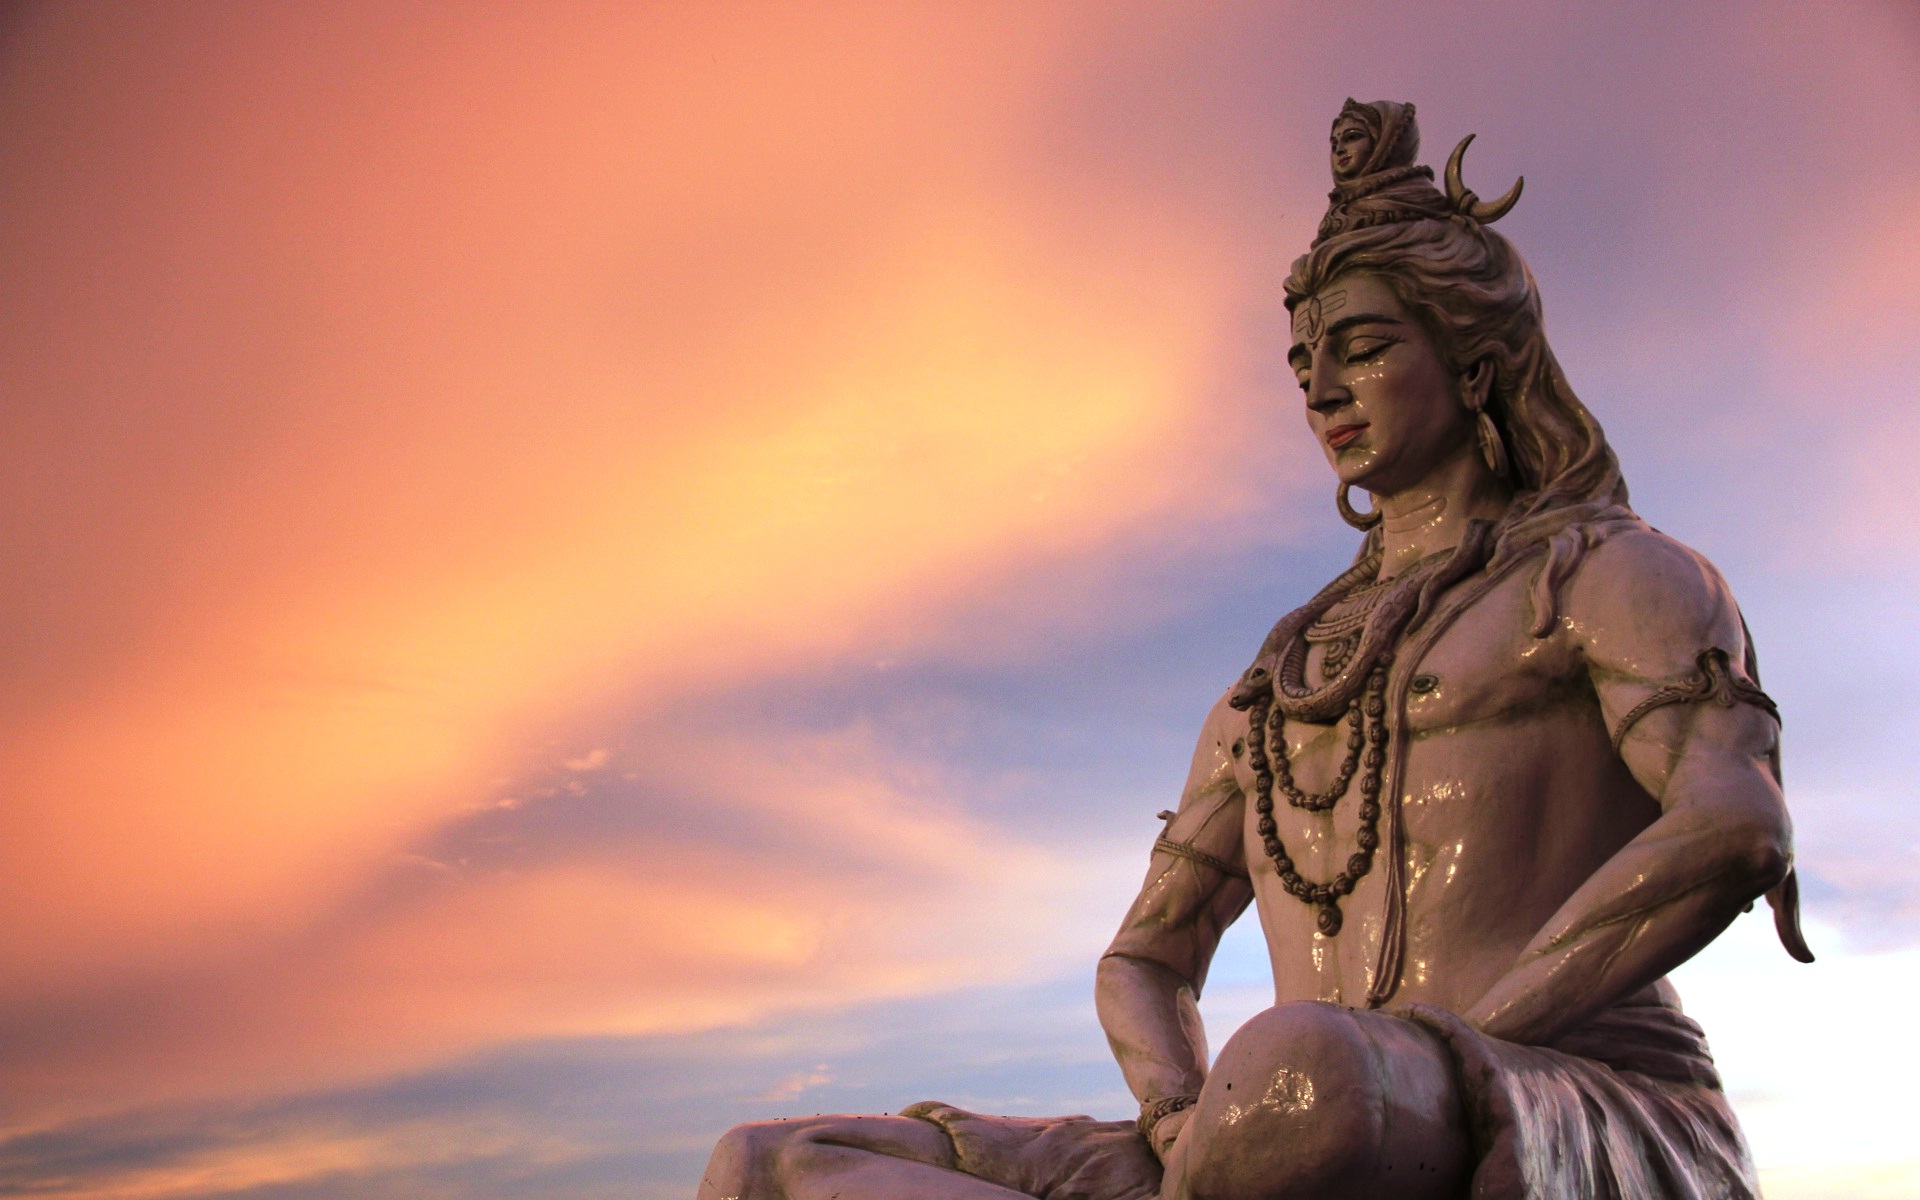 Lord Shiva+Wallpaper